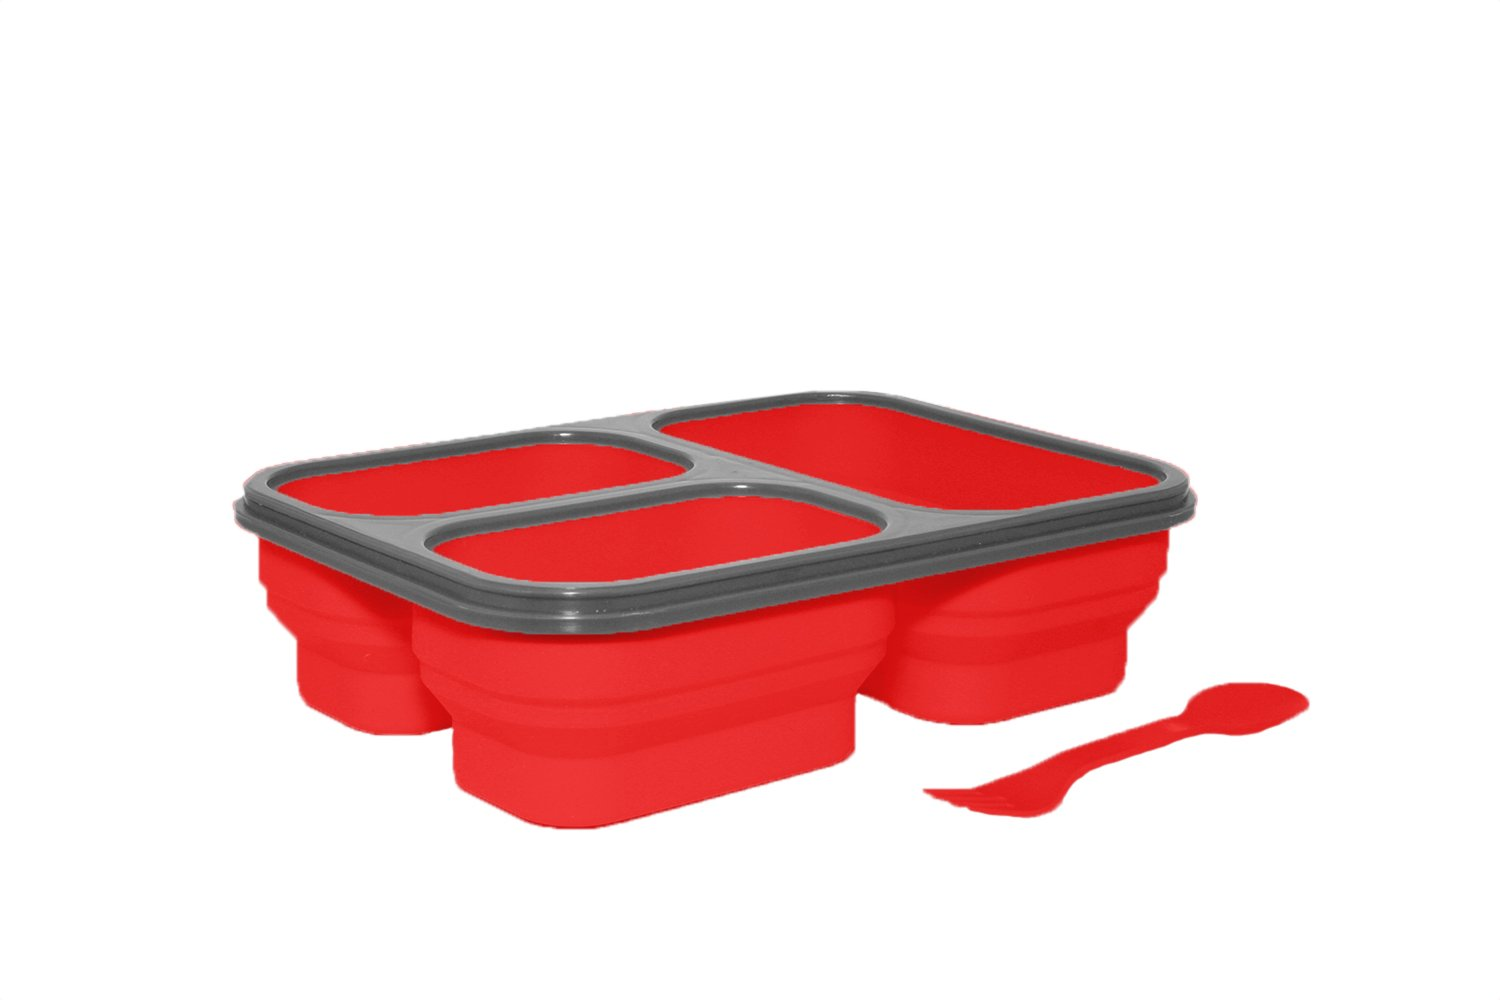 Silver One Expandable & Collapsible Bento Box Silicone Container Children/Adult Lunch Box, 3 Compartments (Eco One Meal Kit)